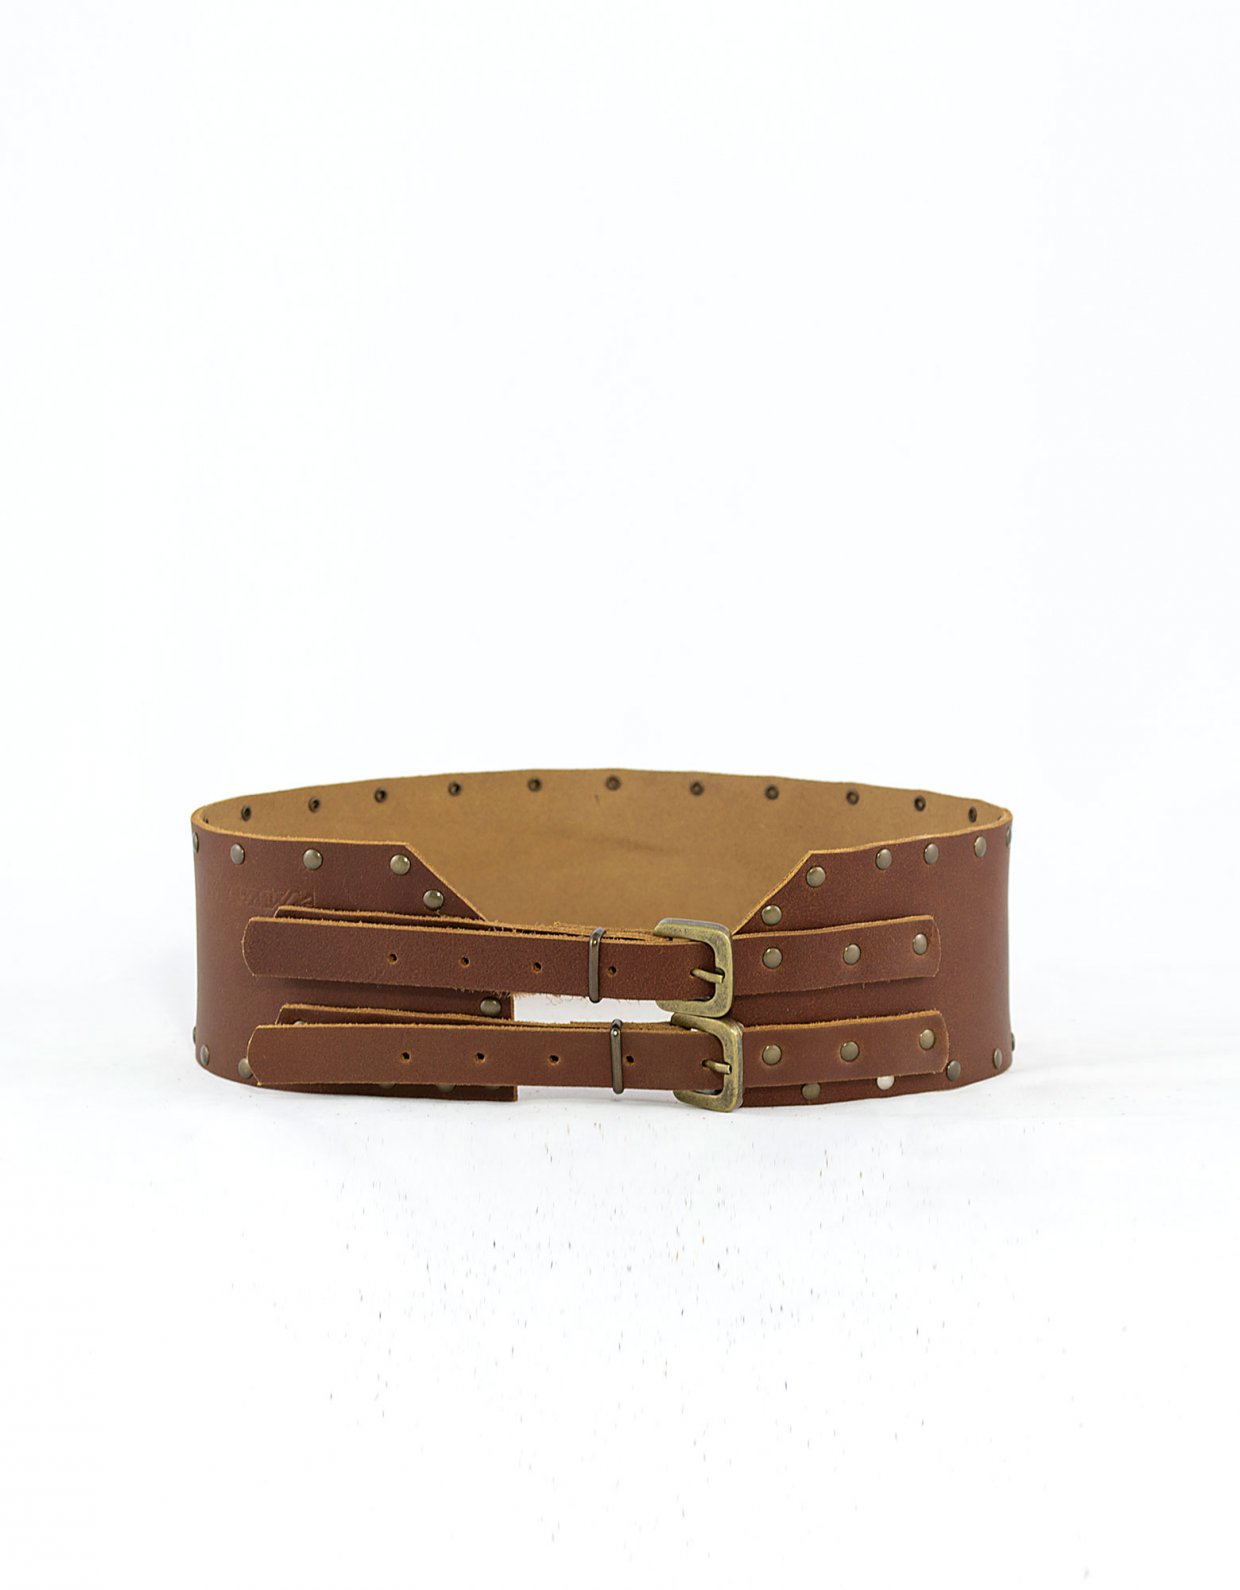 Peace & Chaos Harmony belt tanned